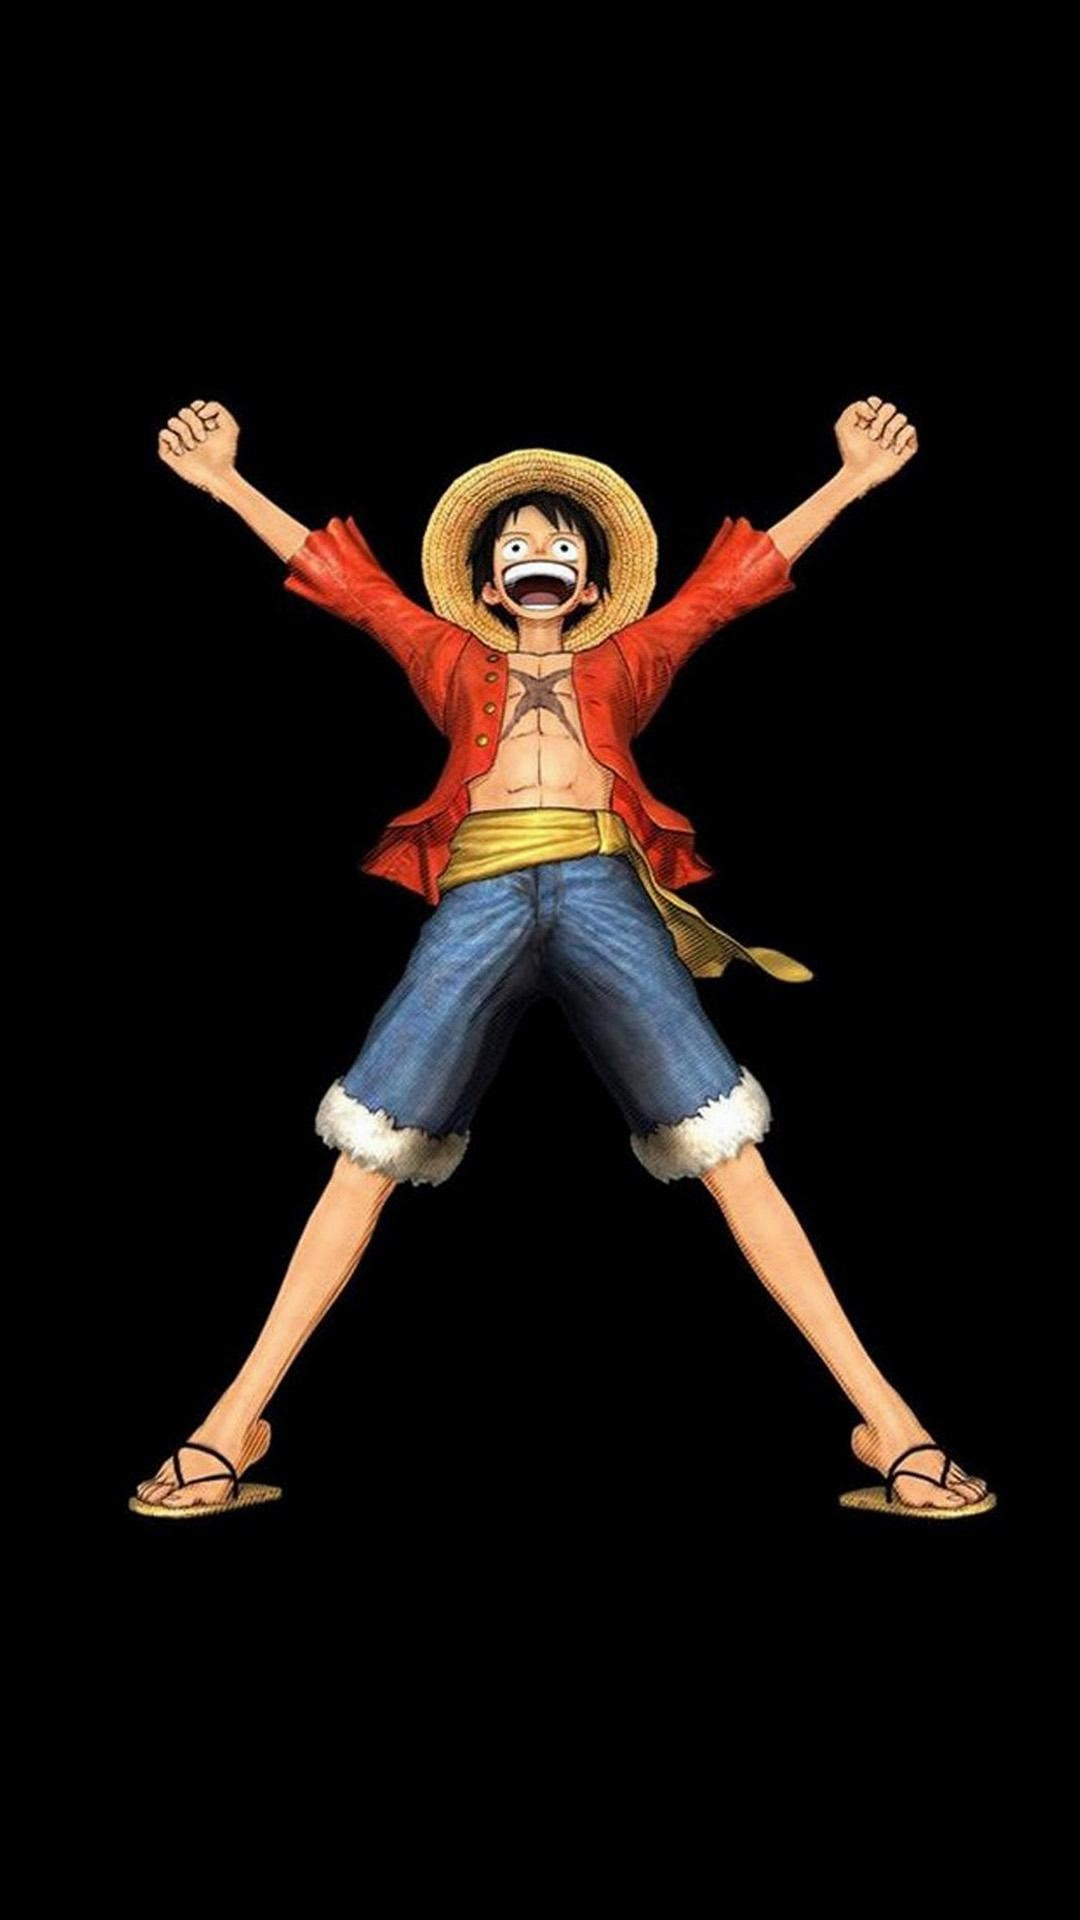 Nami One Piece Wallpaper Android